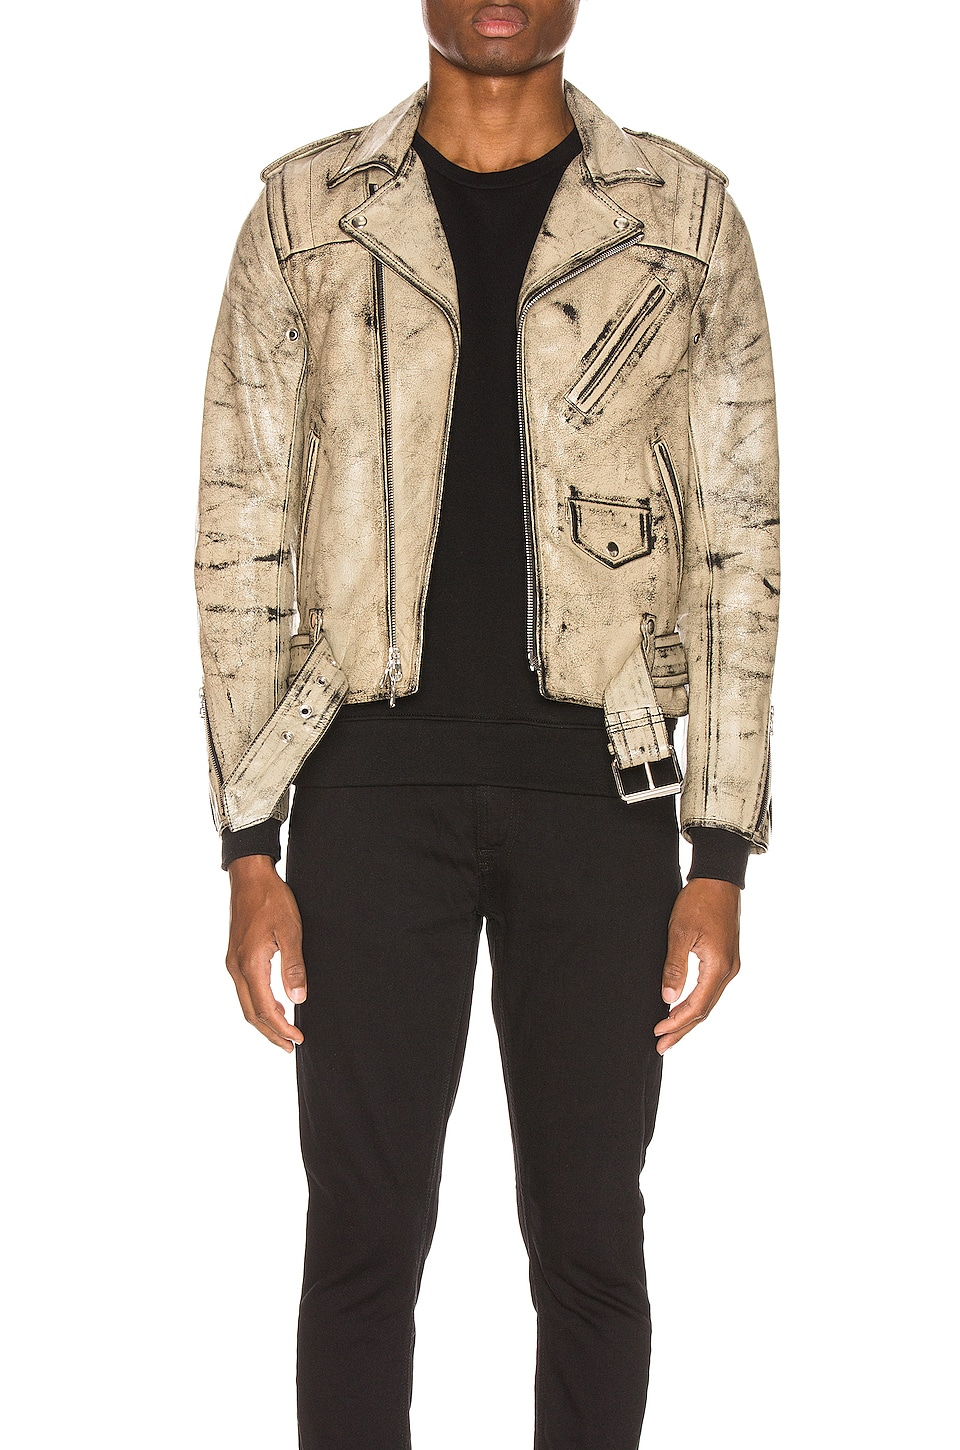 JOHN ELLIOTT x Blackmeans Rider's Jacket in Black & Ivory Paint